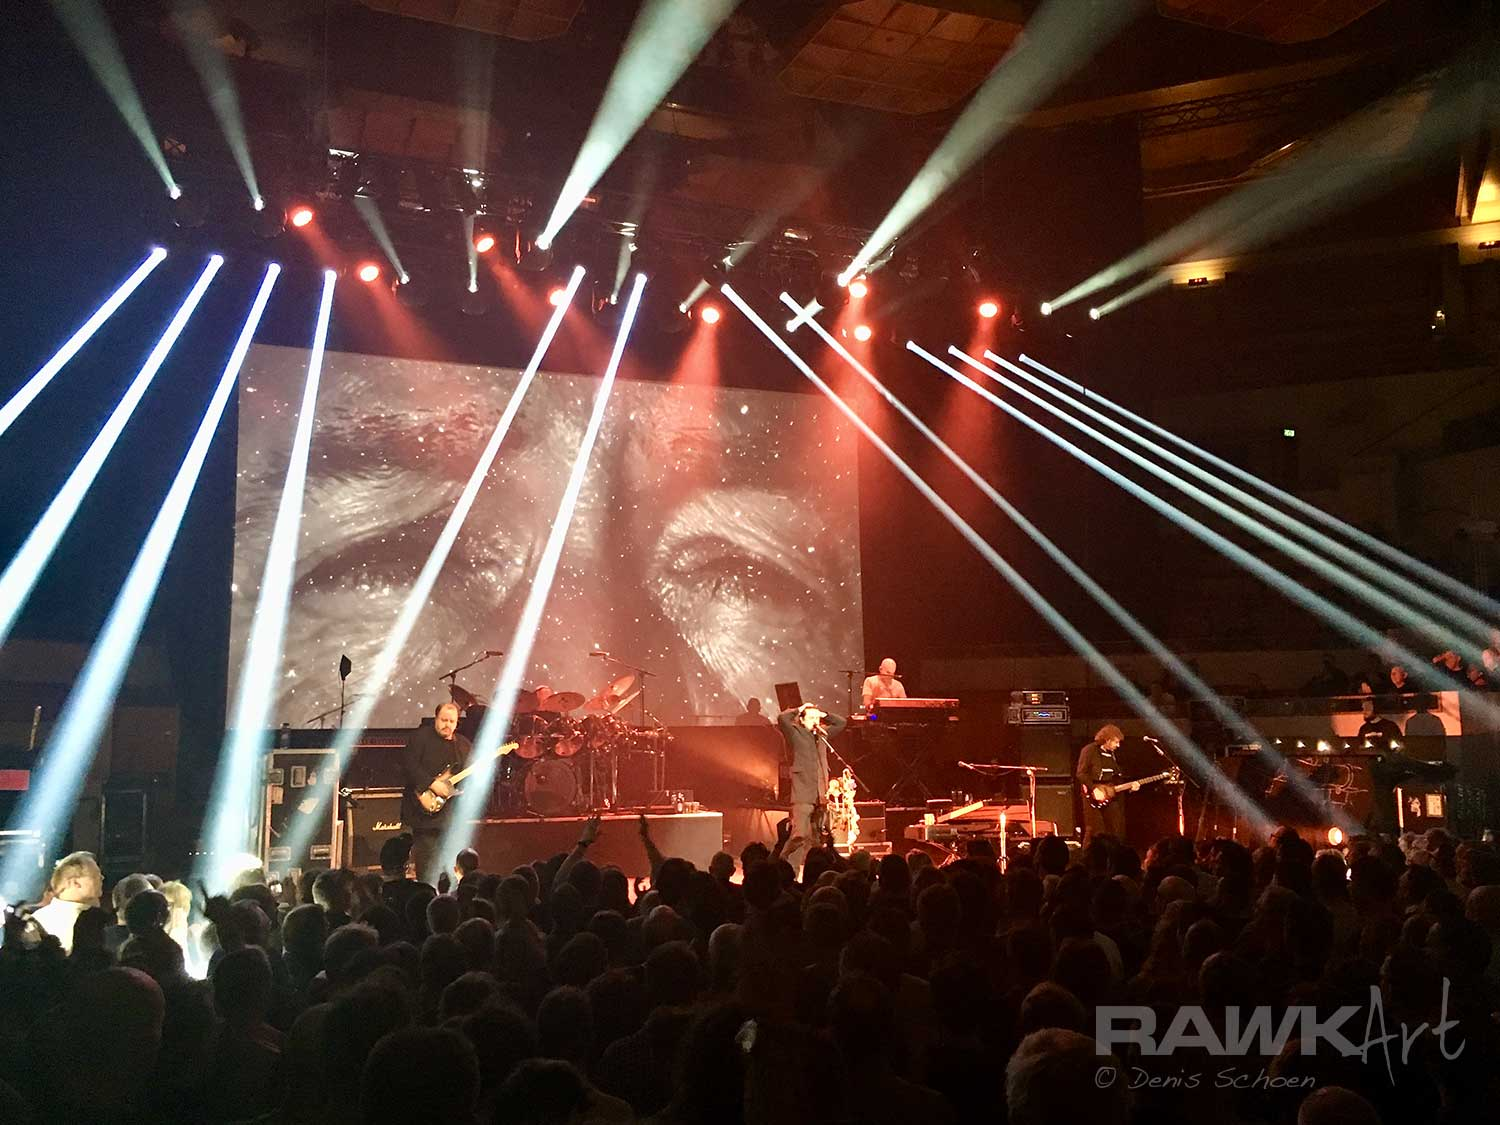 Marillion at TivoliVredenburg Grote Zaal, Utrecht, Netherlands 2016, 2016 World Tour